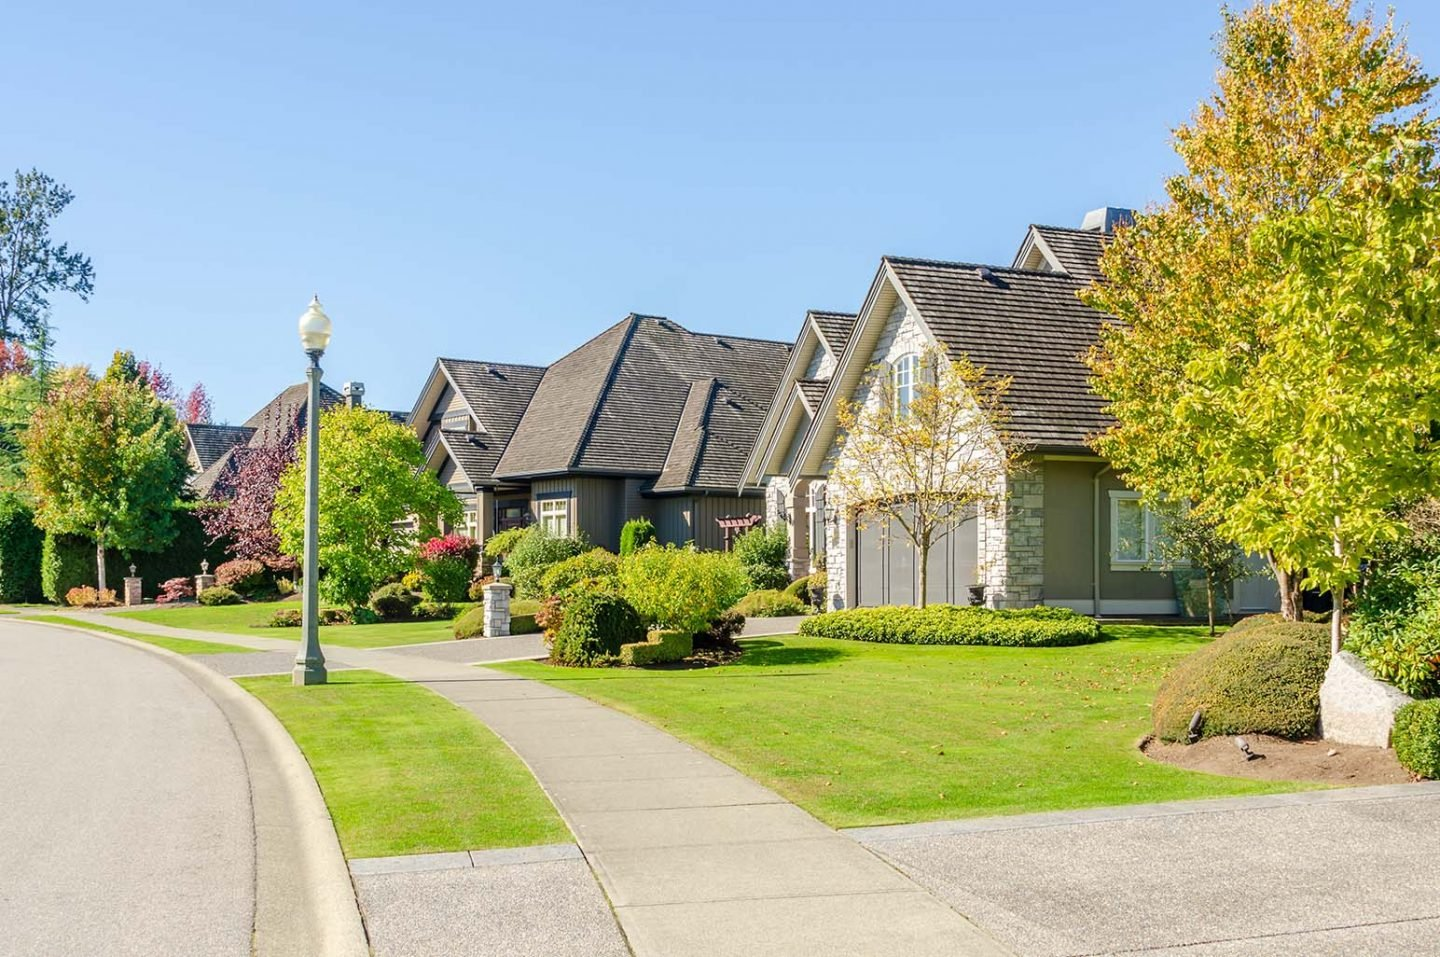 How To Buy A House In Ontario